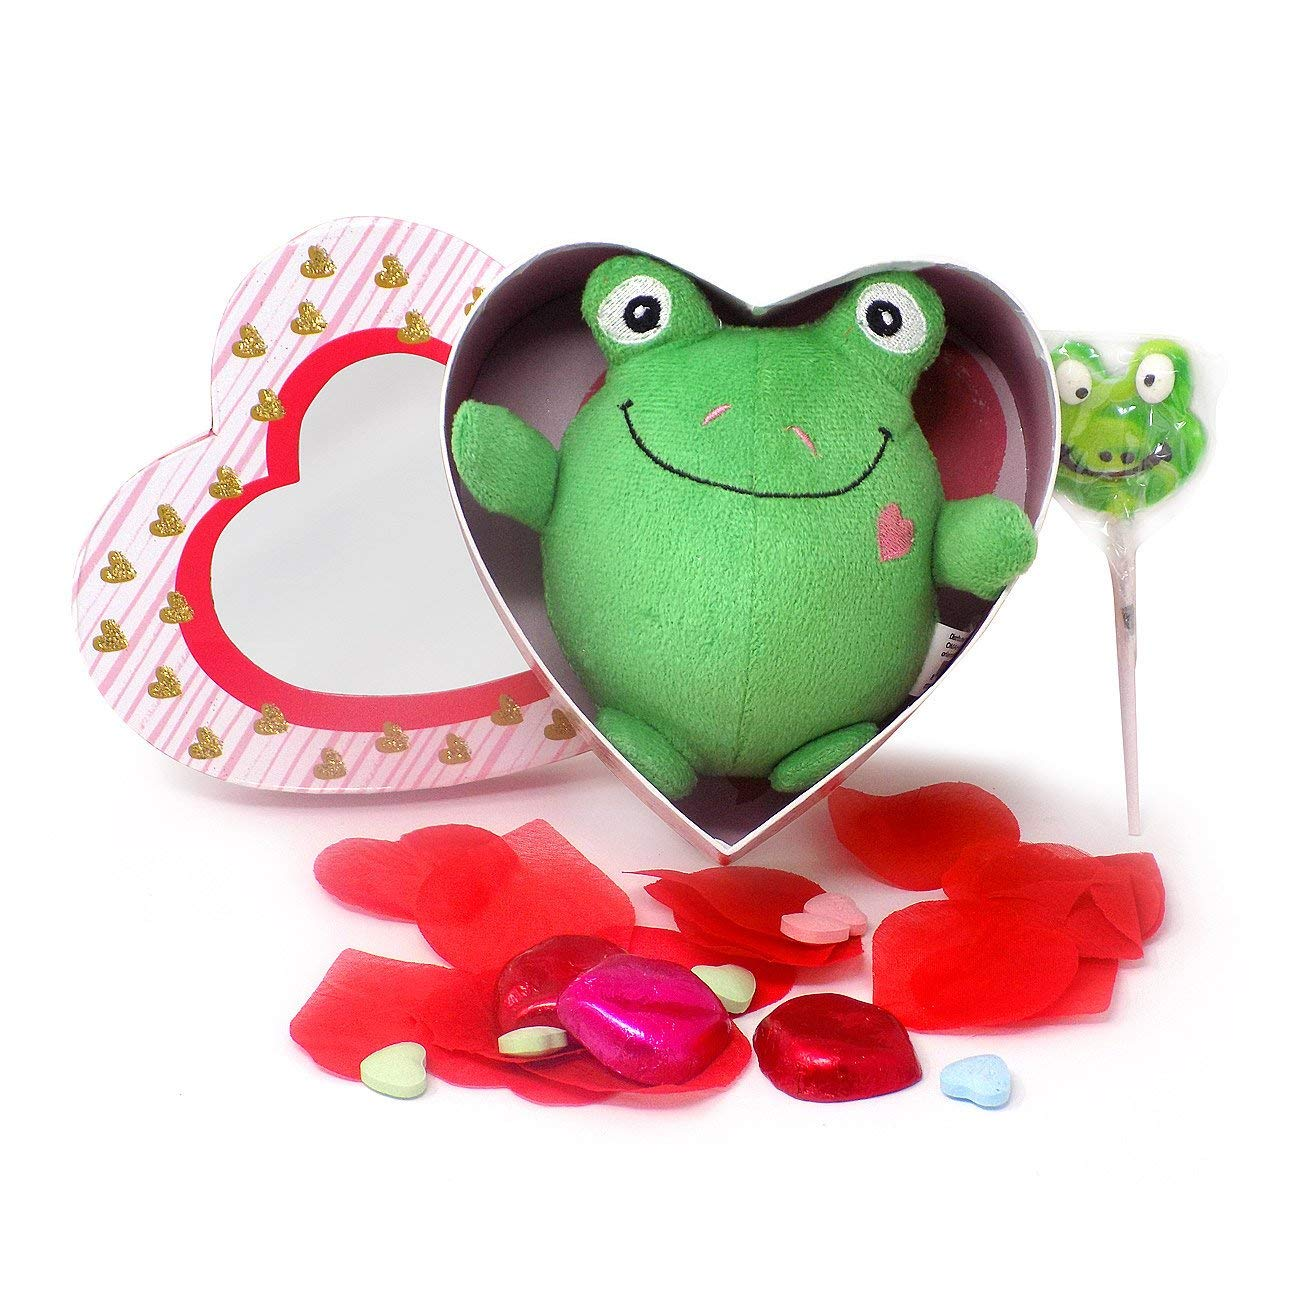 Toys Valentine Heart Stuffed Frogs 12 Pieces